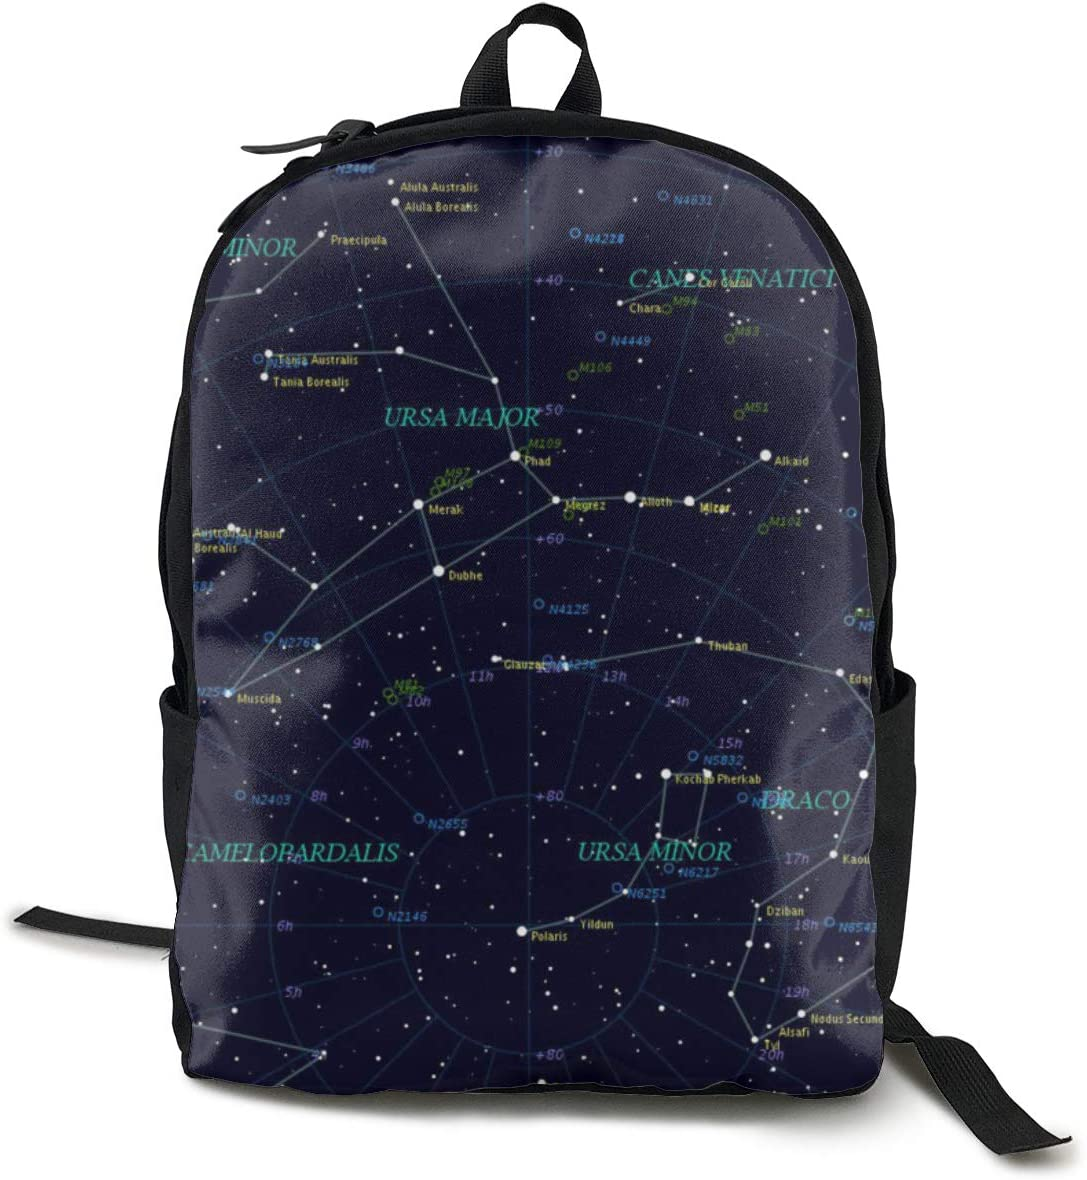 Starry Sky Constellation Cute Cartoon Weekly update Capa Rucksacks Large Quality inspection Star